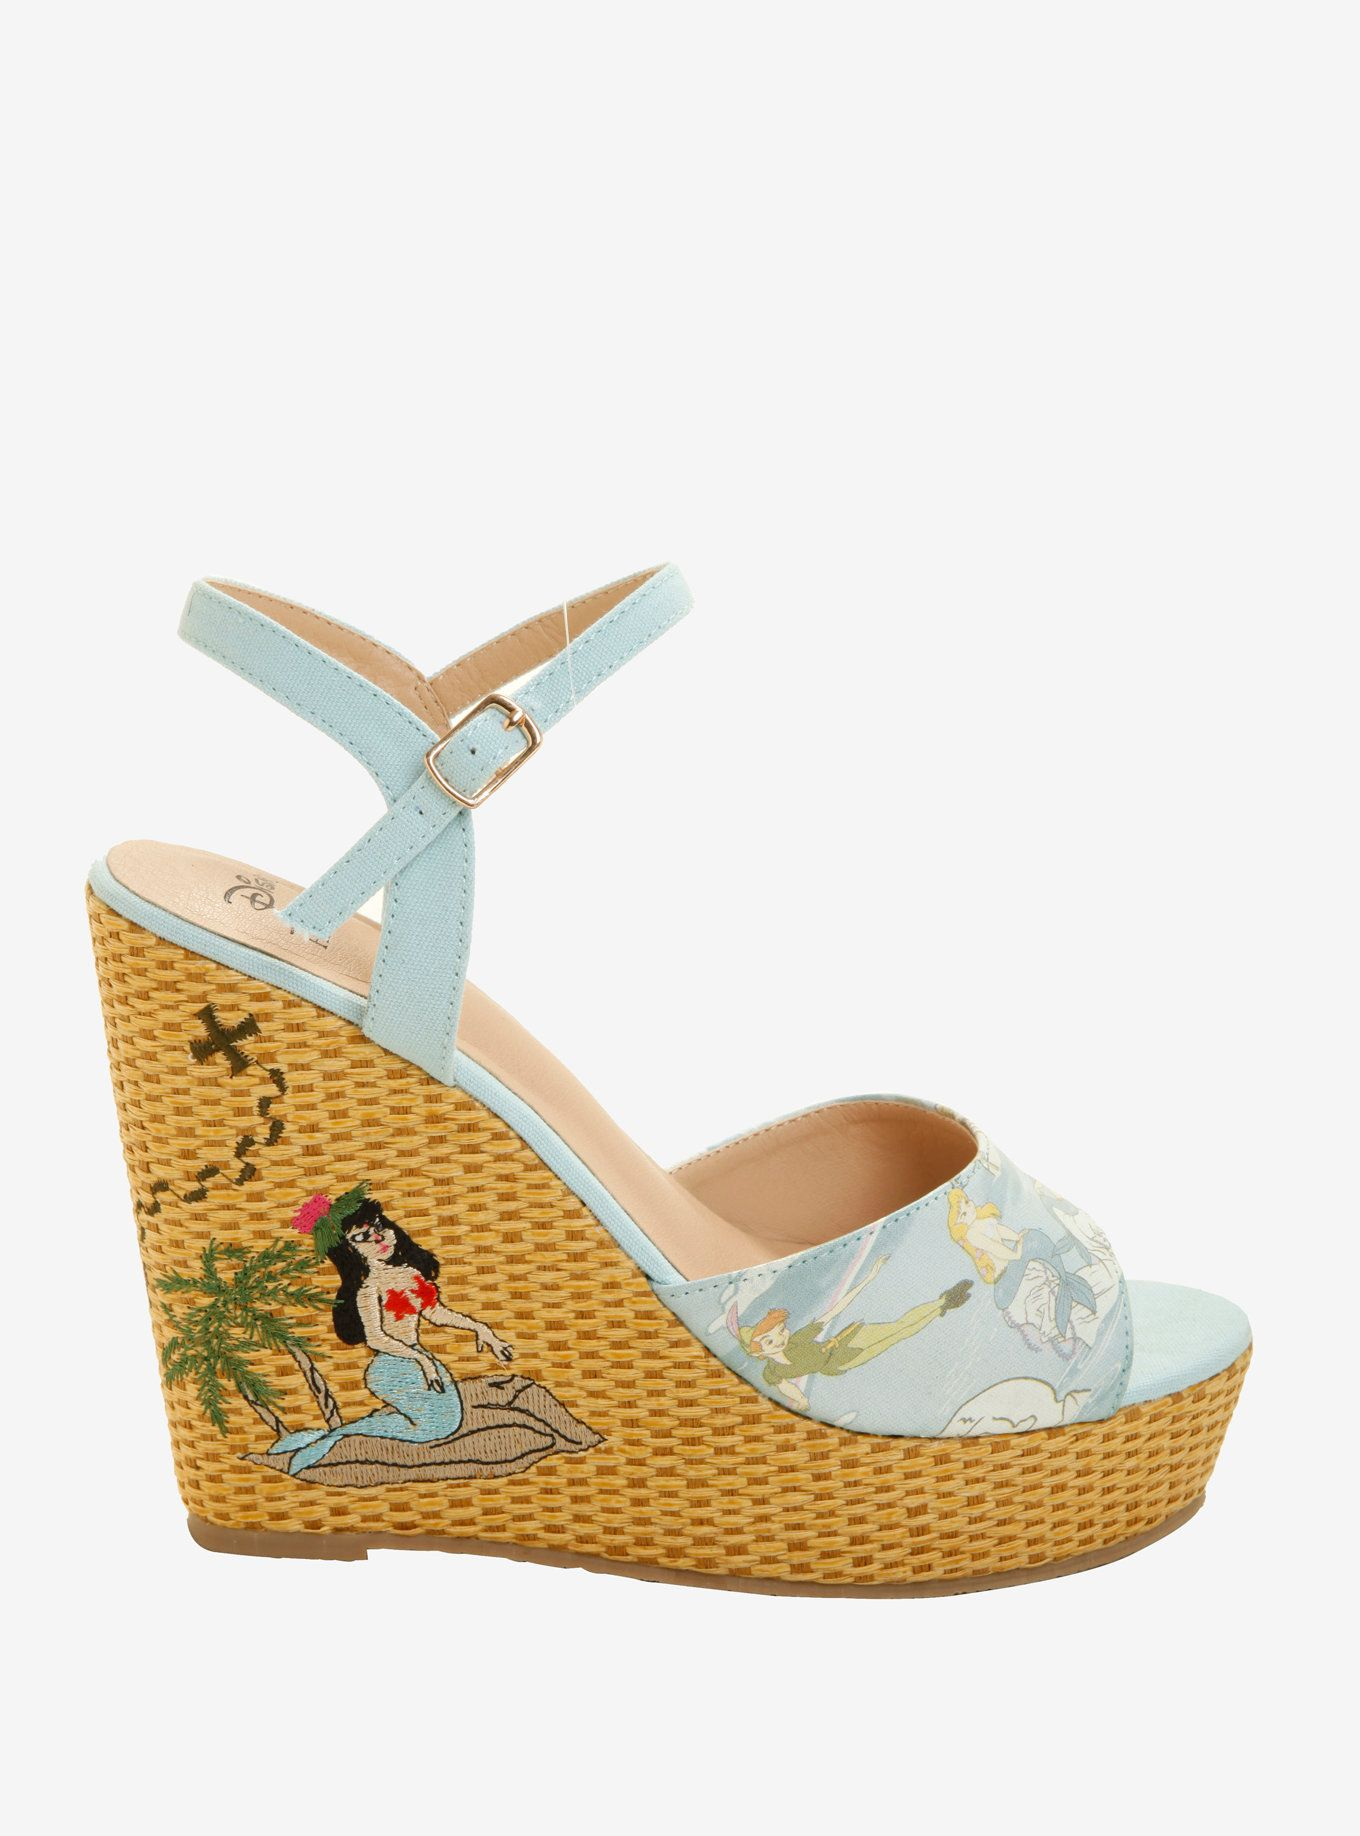 Her Universe Disney Peter Pan Mermaid Lagoon Wedge Heels